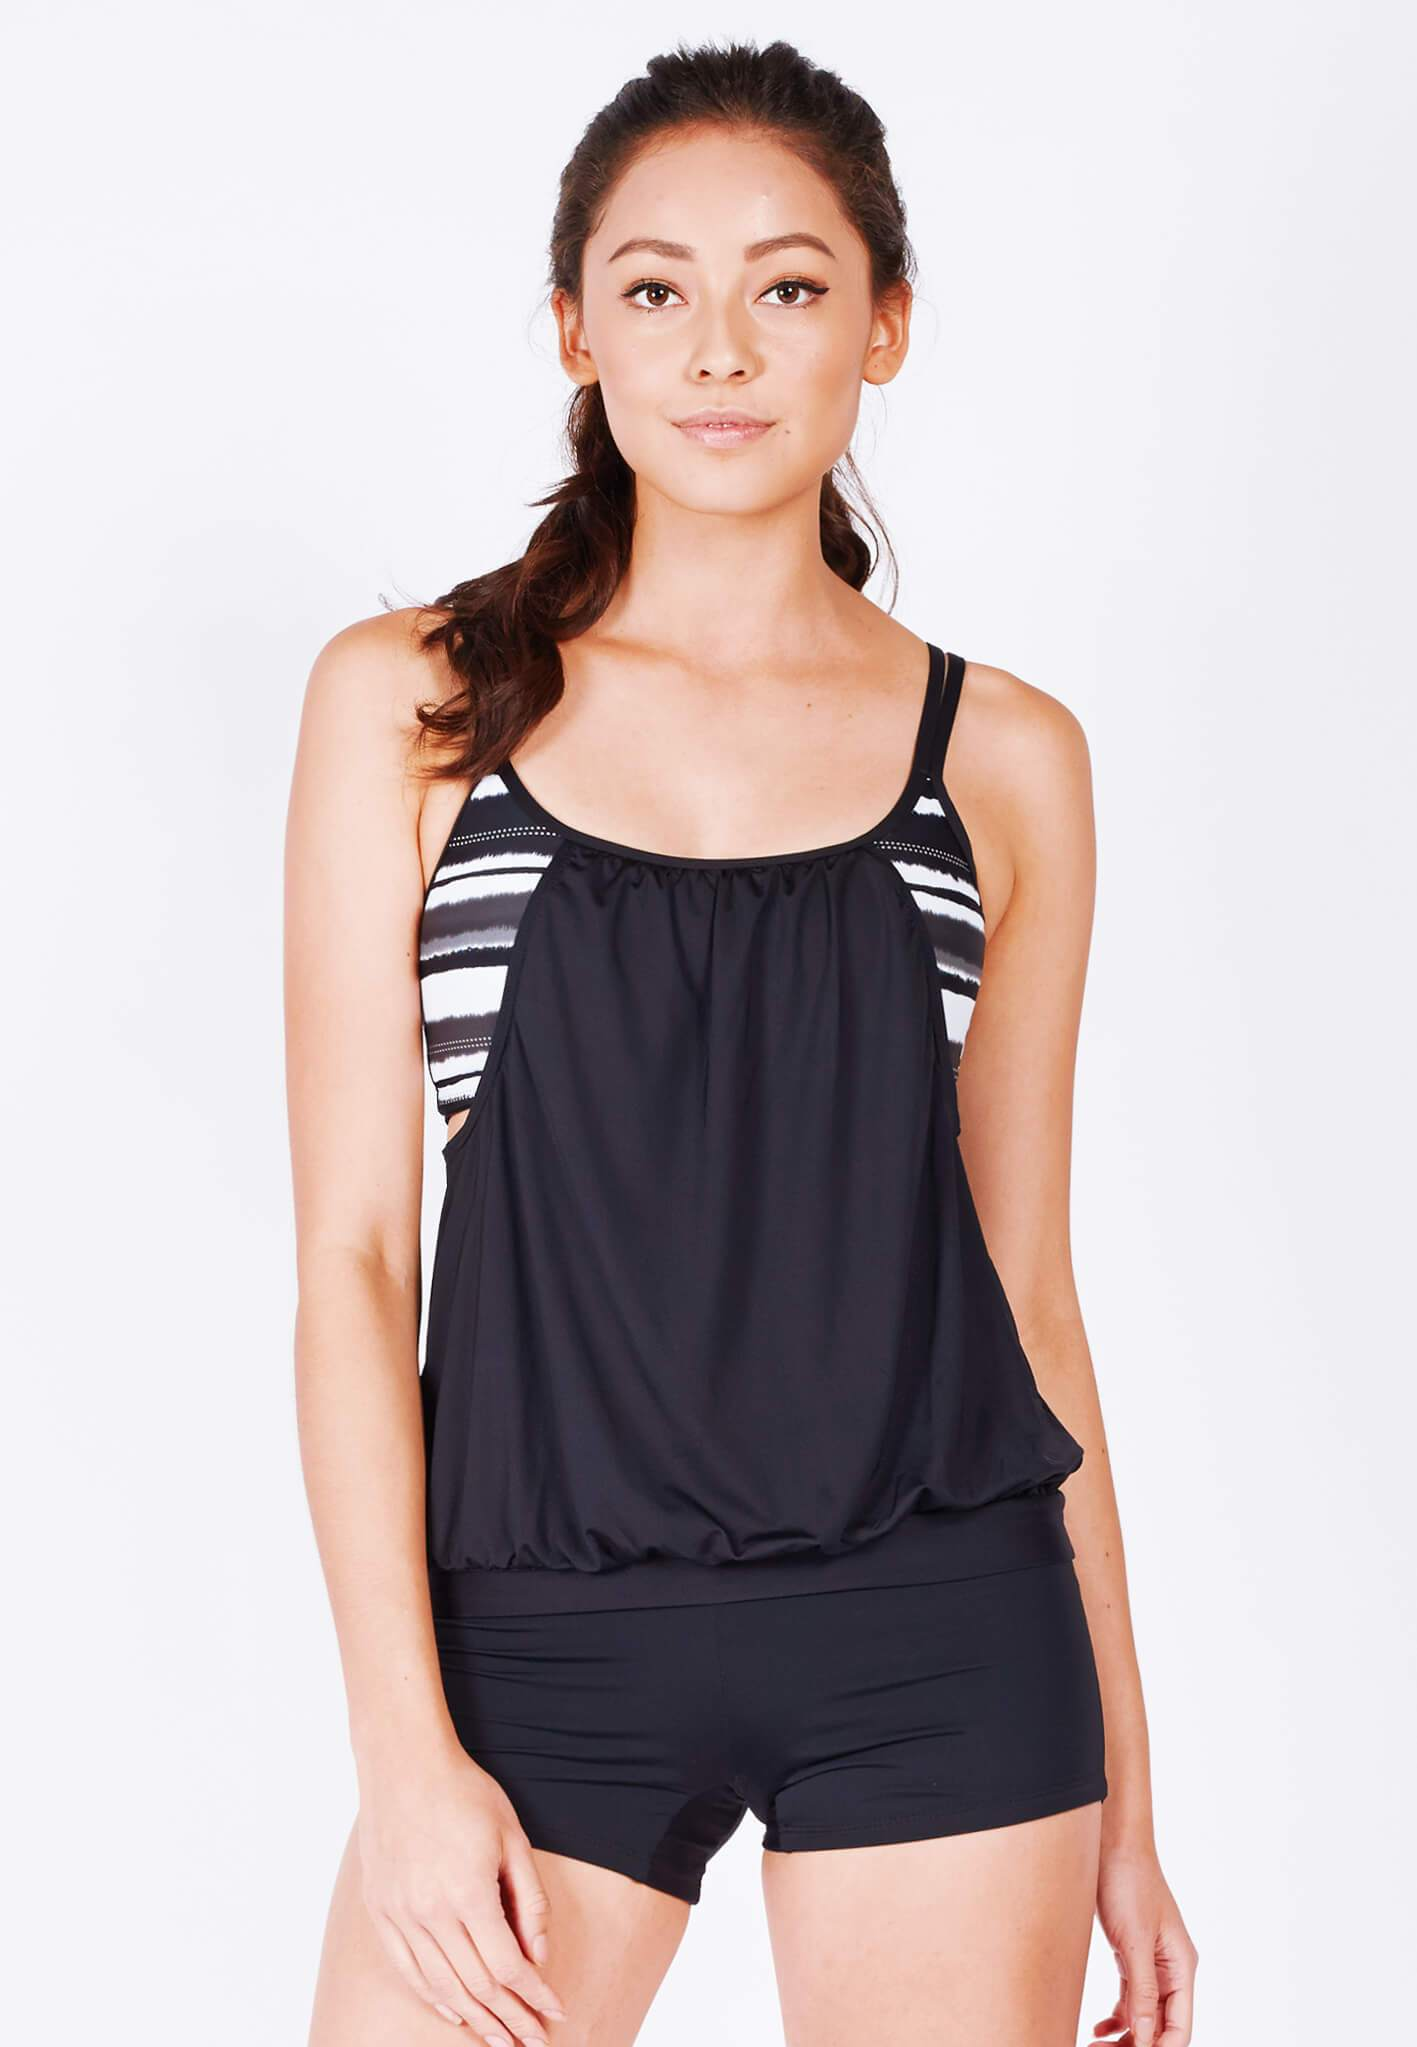 2-in-1 Blouson Tankini II Black Top in Paintbrush Print (XS - 2XL)